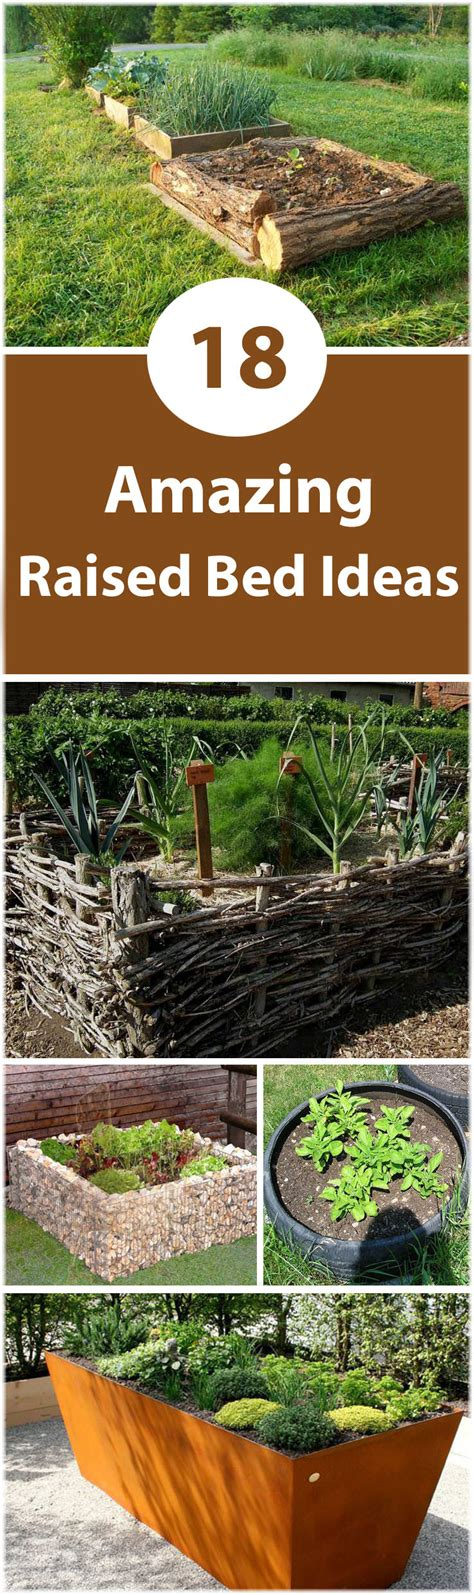 raised bed gardening ideas 18 great raised bed ideas raised bed gardening balcony